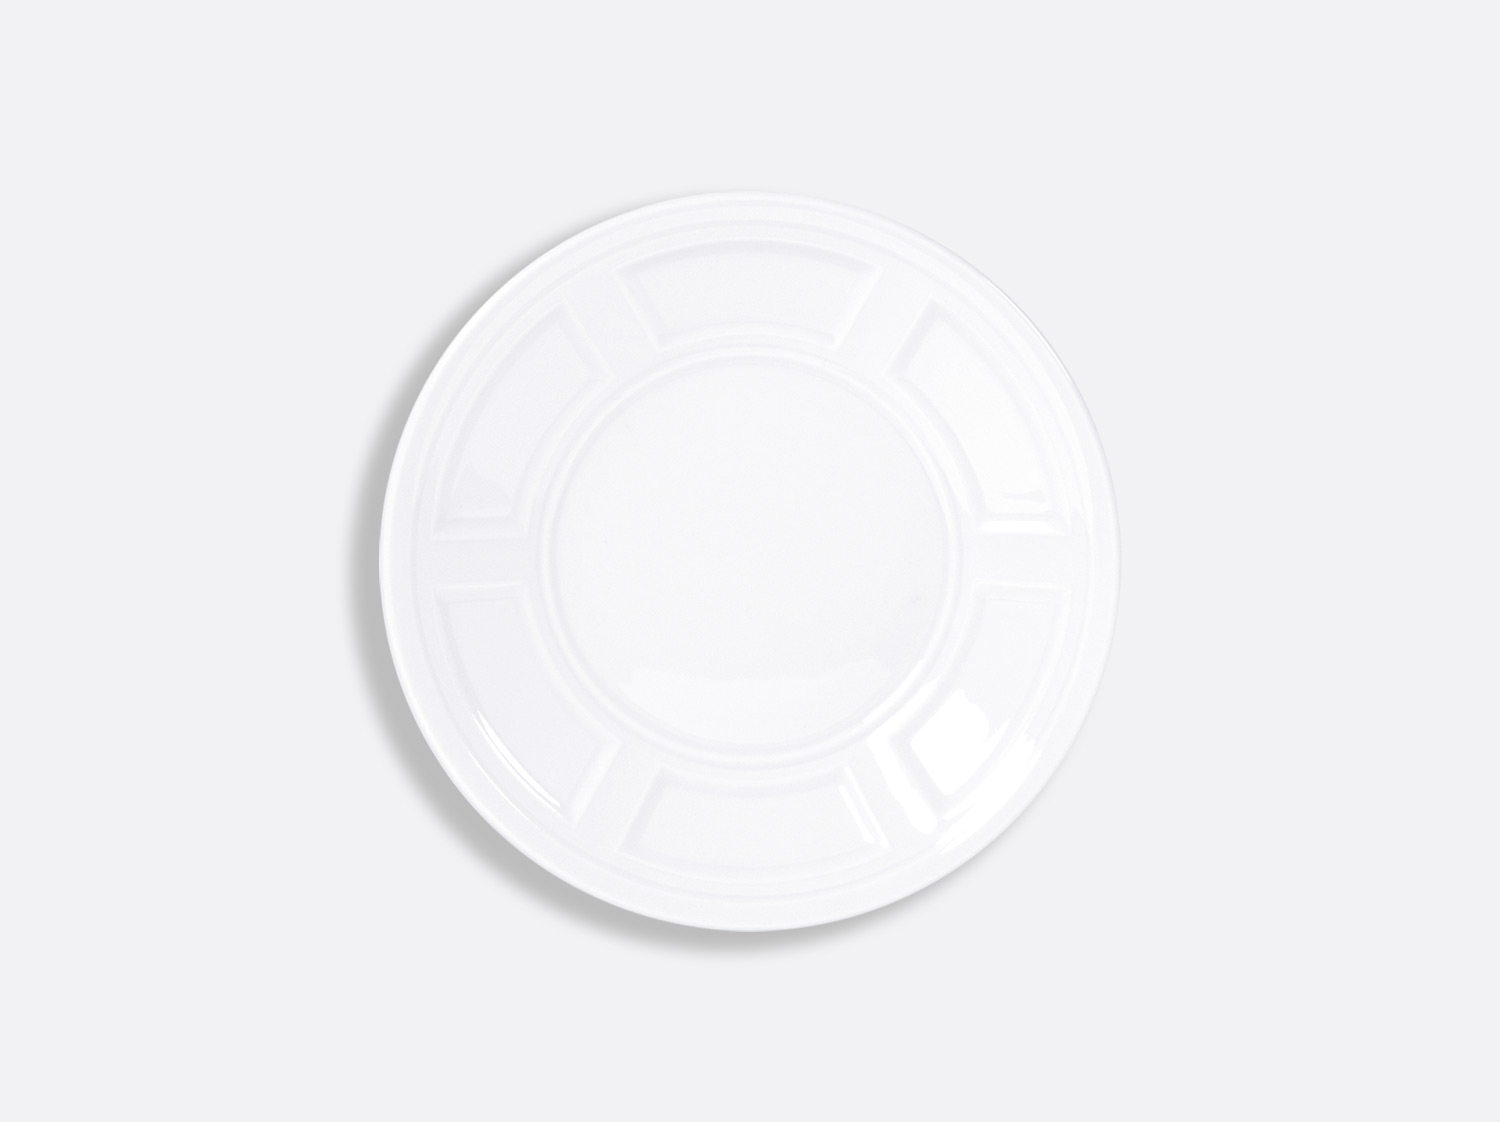 Assiette plate 16 cm en porcelaine de la collection ATHOS BLANC Bernardaud